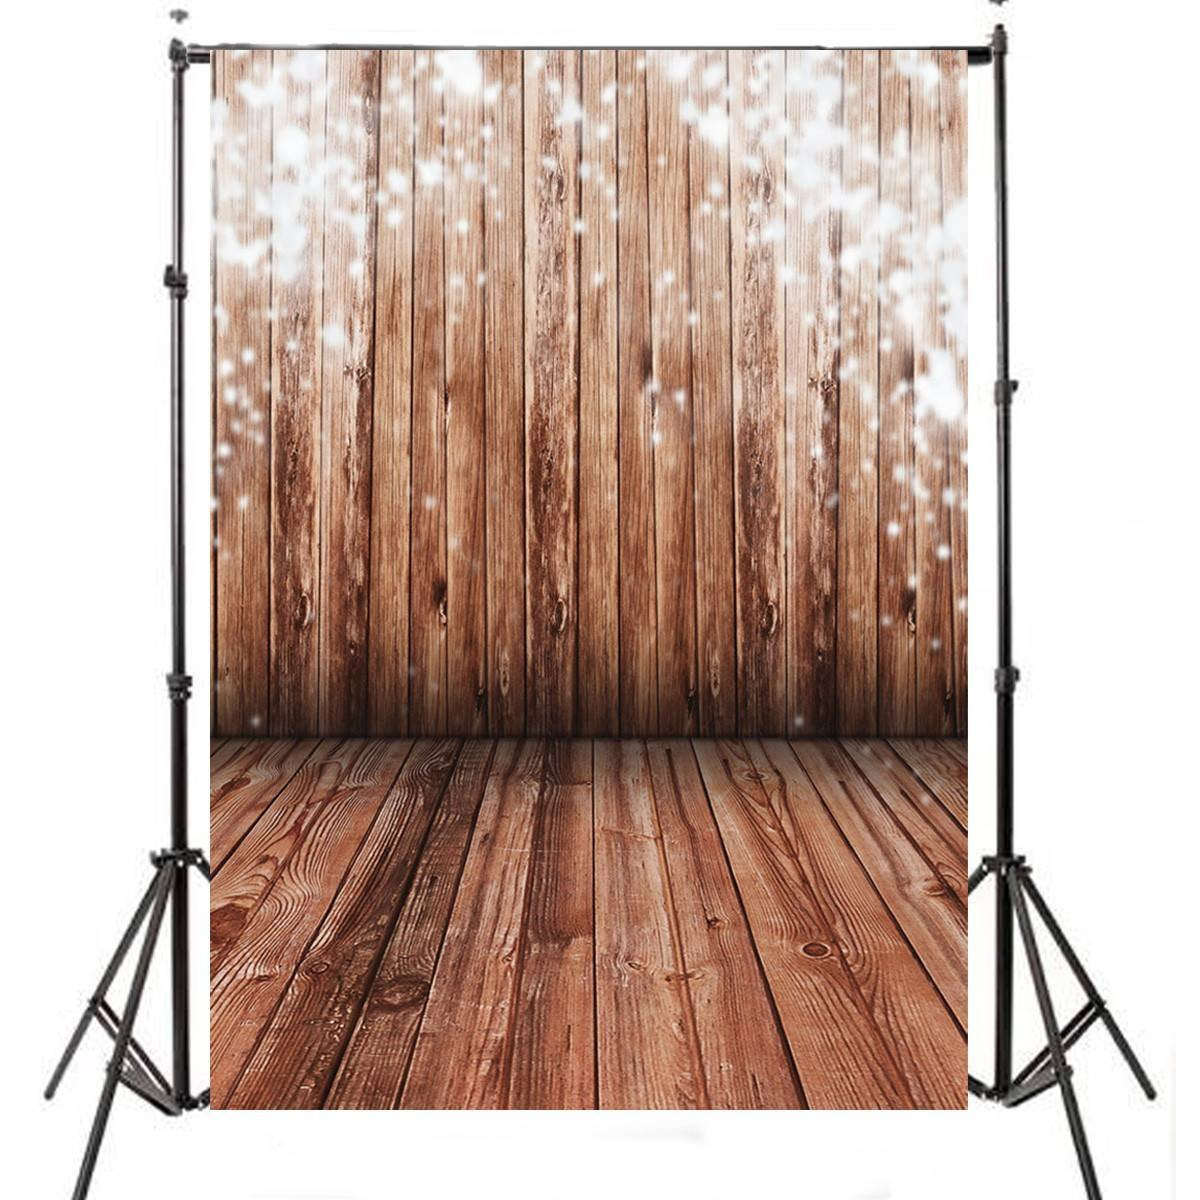 5x7FT Wood Wall Vinyl Photography Backdrop Photo Background Studio Props High Quality New Best Price christmas snow vinyl studio backdrop photography photo background 7x5ft